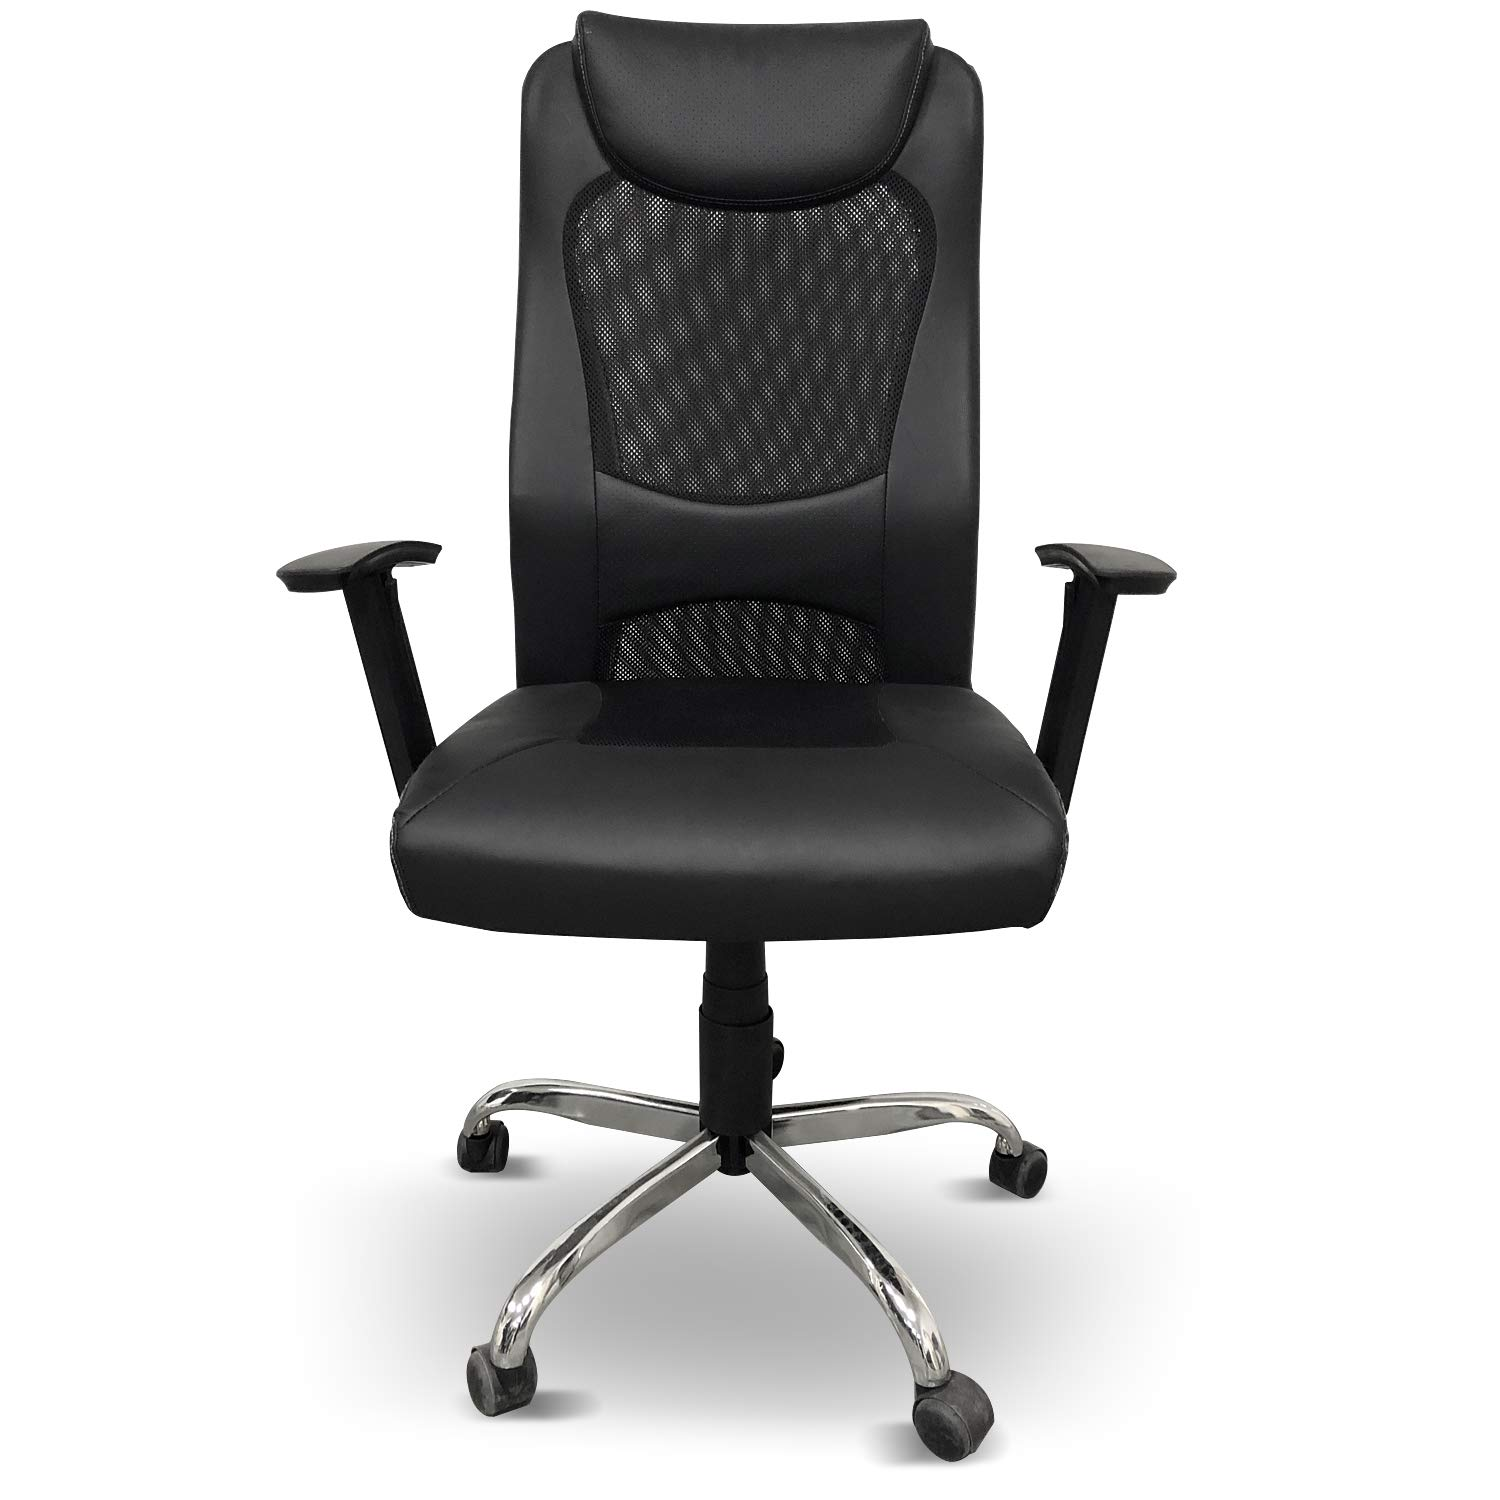 Heonsit High Back Mesh Office Chair - Ergonomic Computer Desk Task Executive Chair with Padded Leather Headrest and Seat, Adjustable Armrests, Black